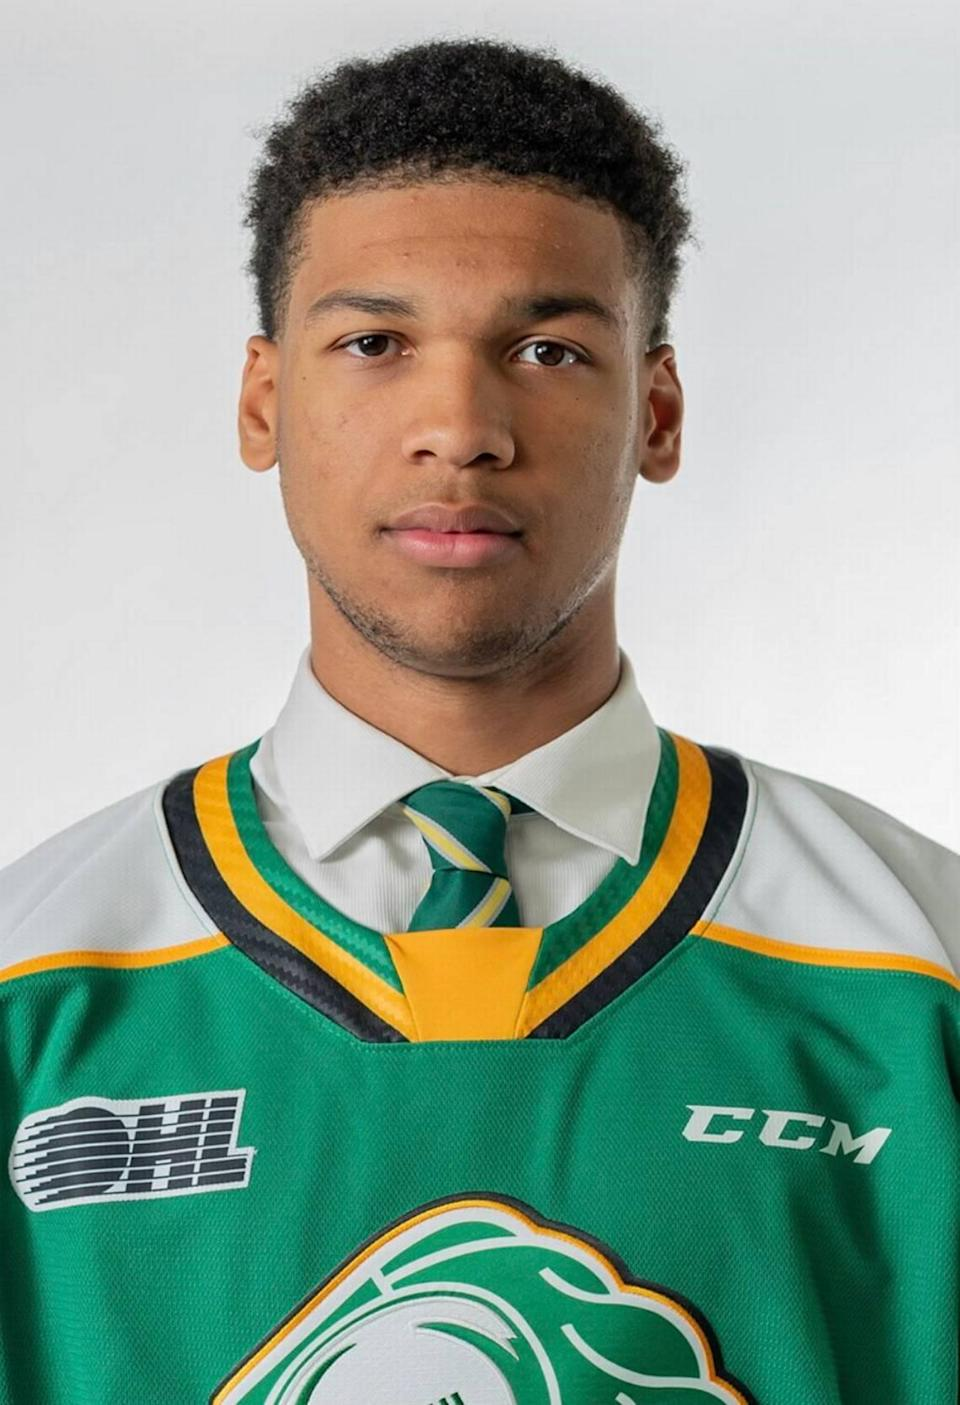 Bryce Montgomery is a 6-5, 220-pound defenseman for the London Knights of the Ontario Hockey League.